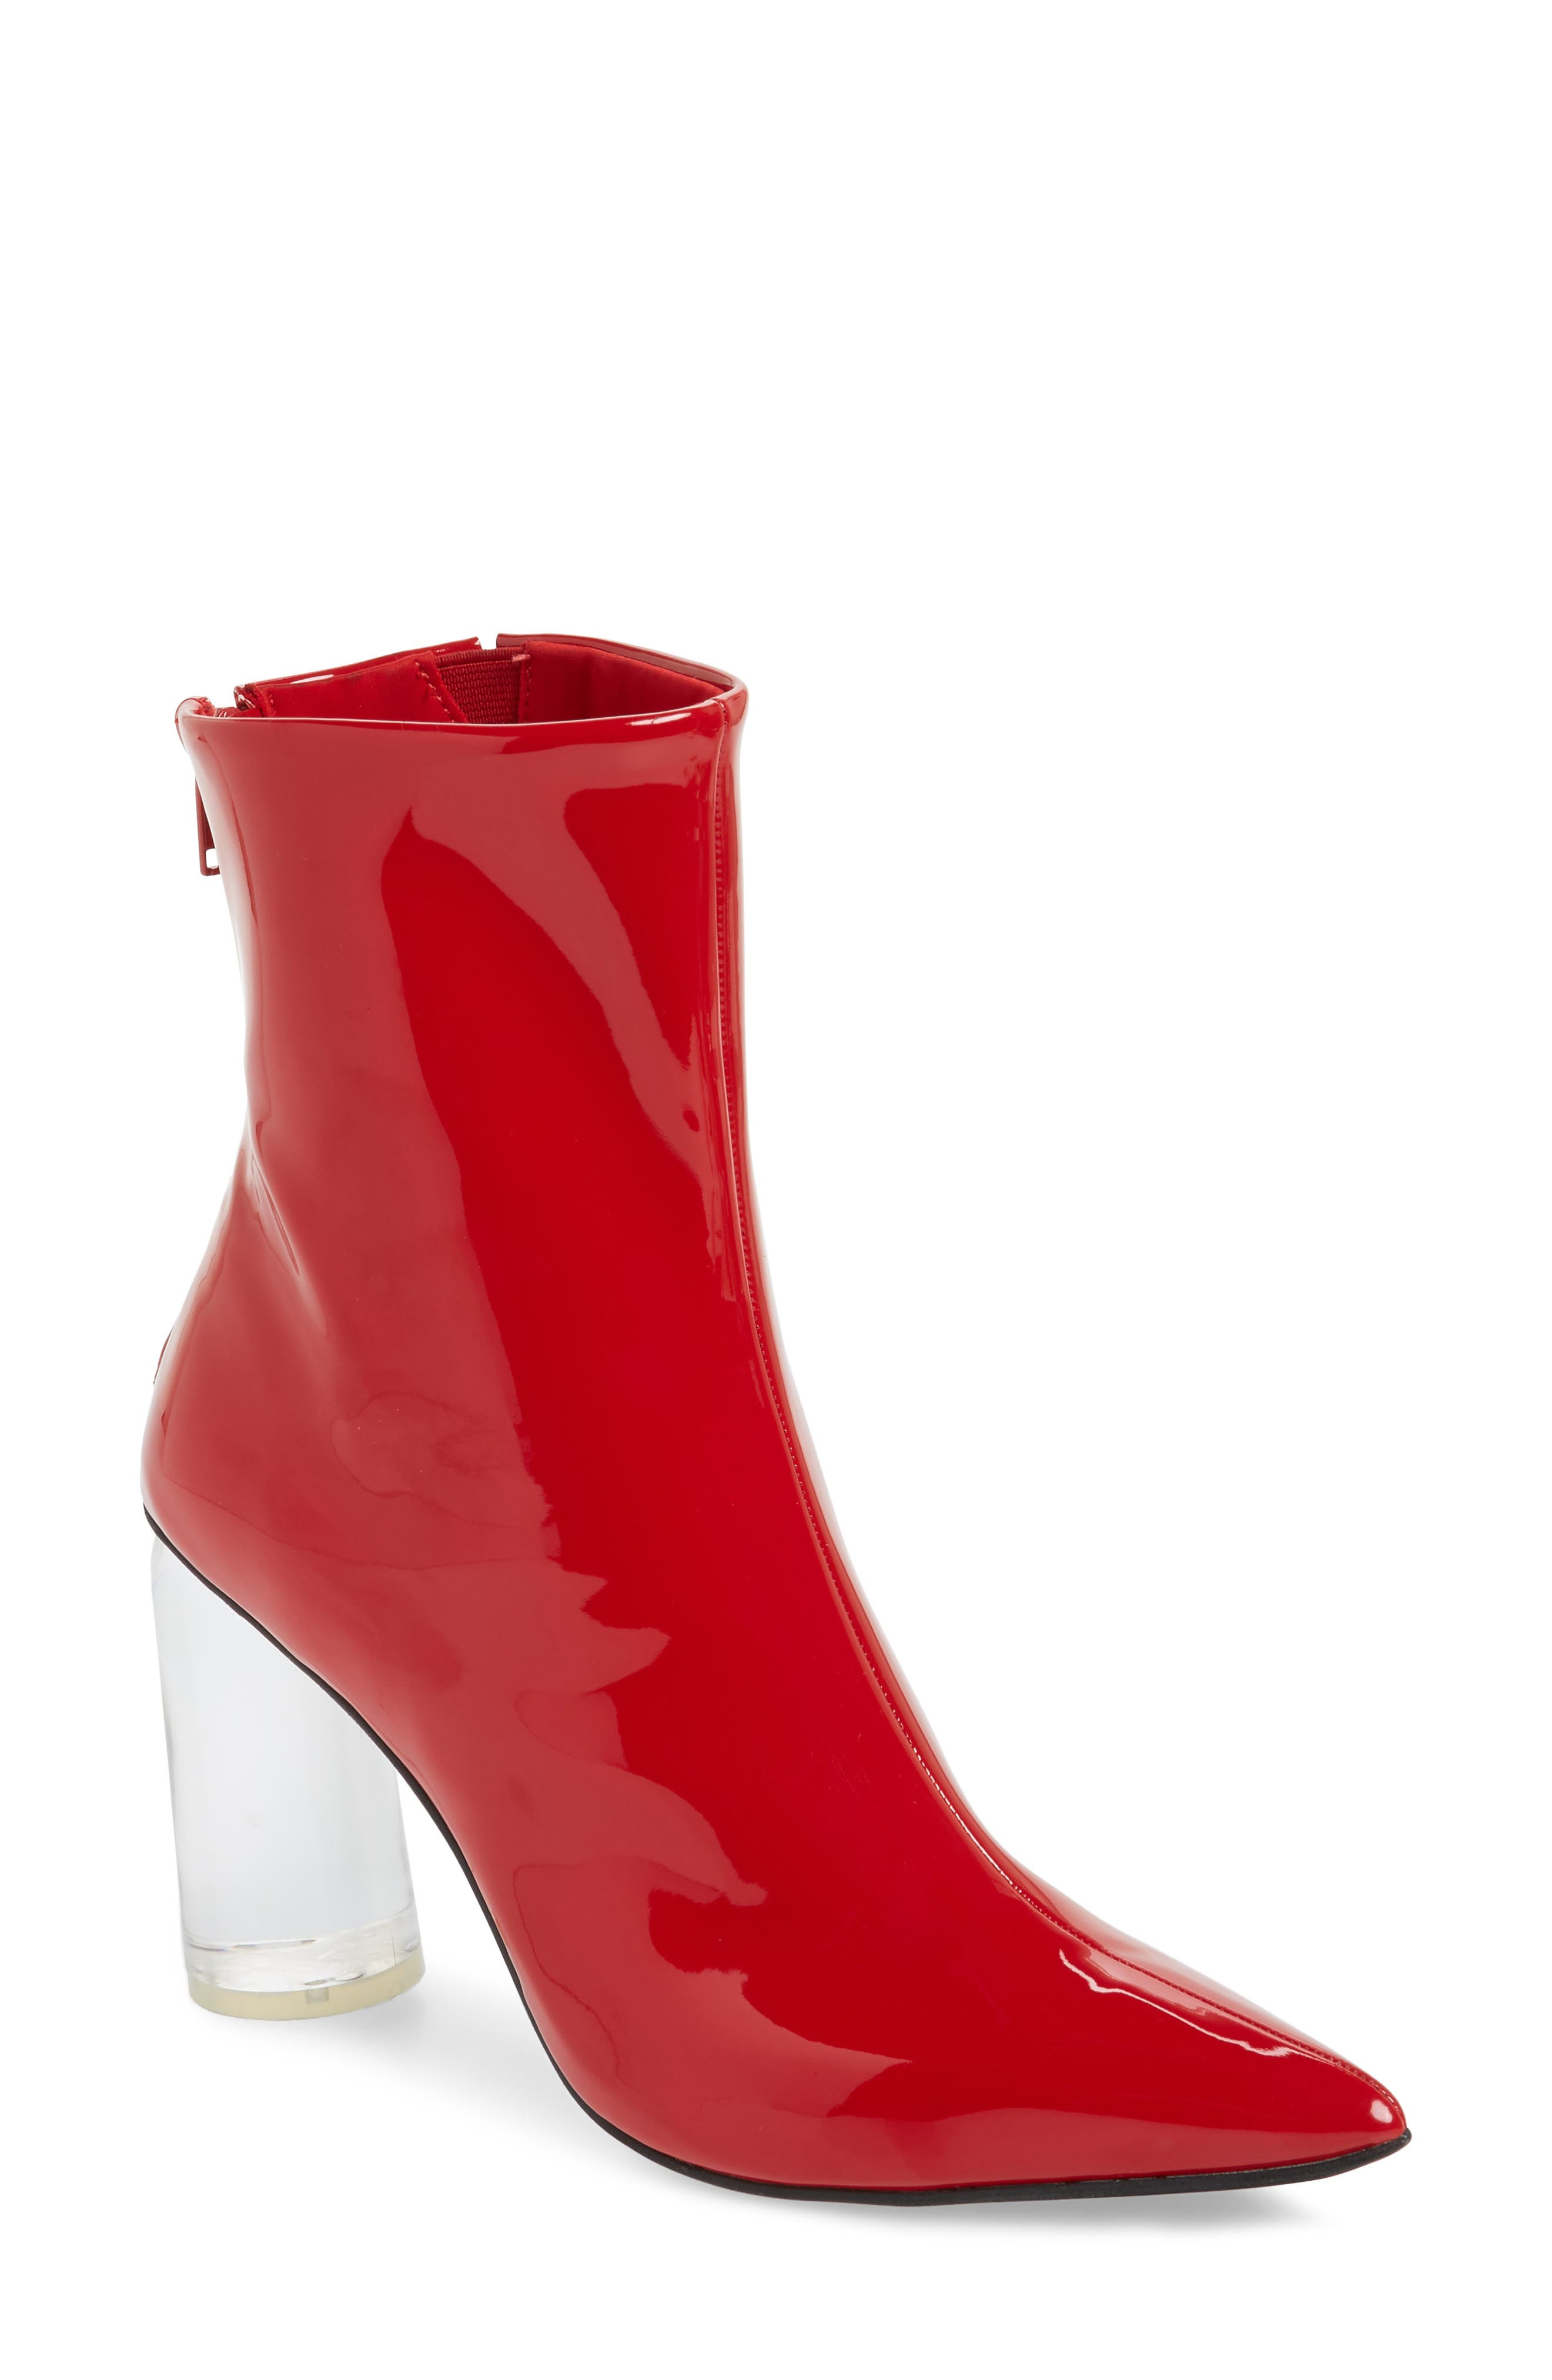 Lustrous Column Heel Bootie,                         Main,                         color, Red Patent Leather/ Clear